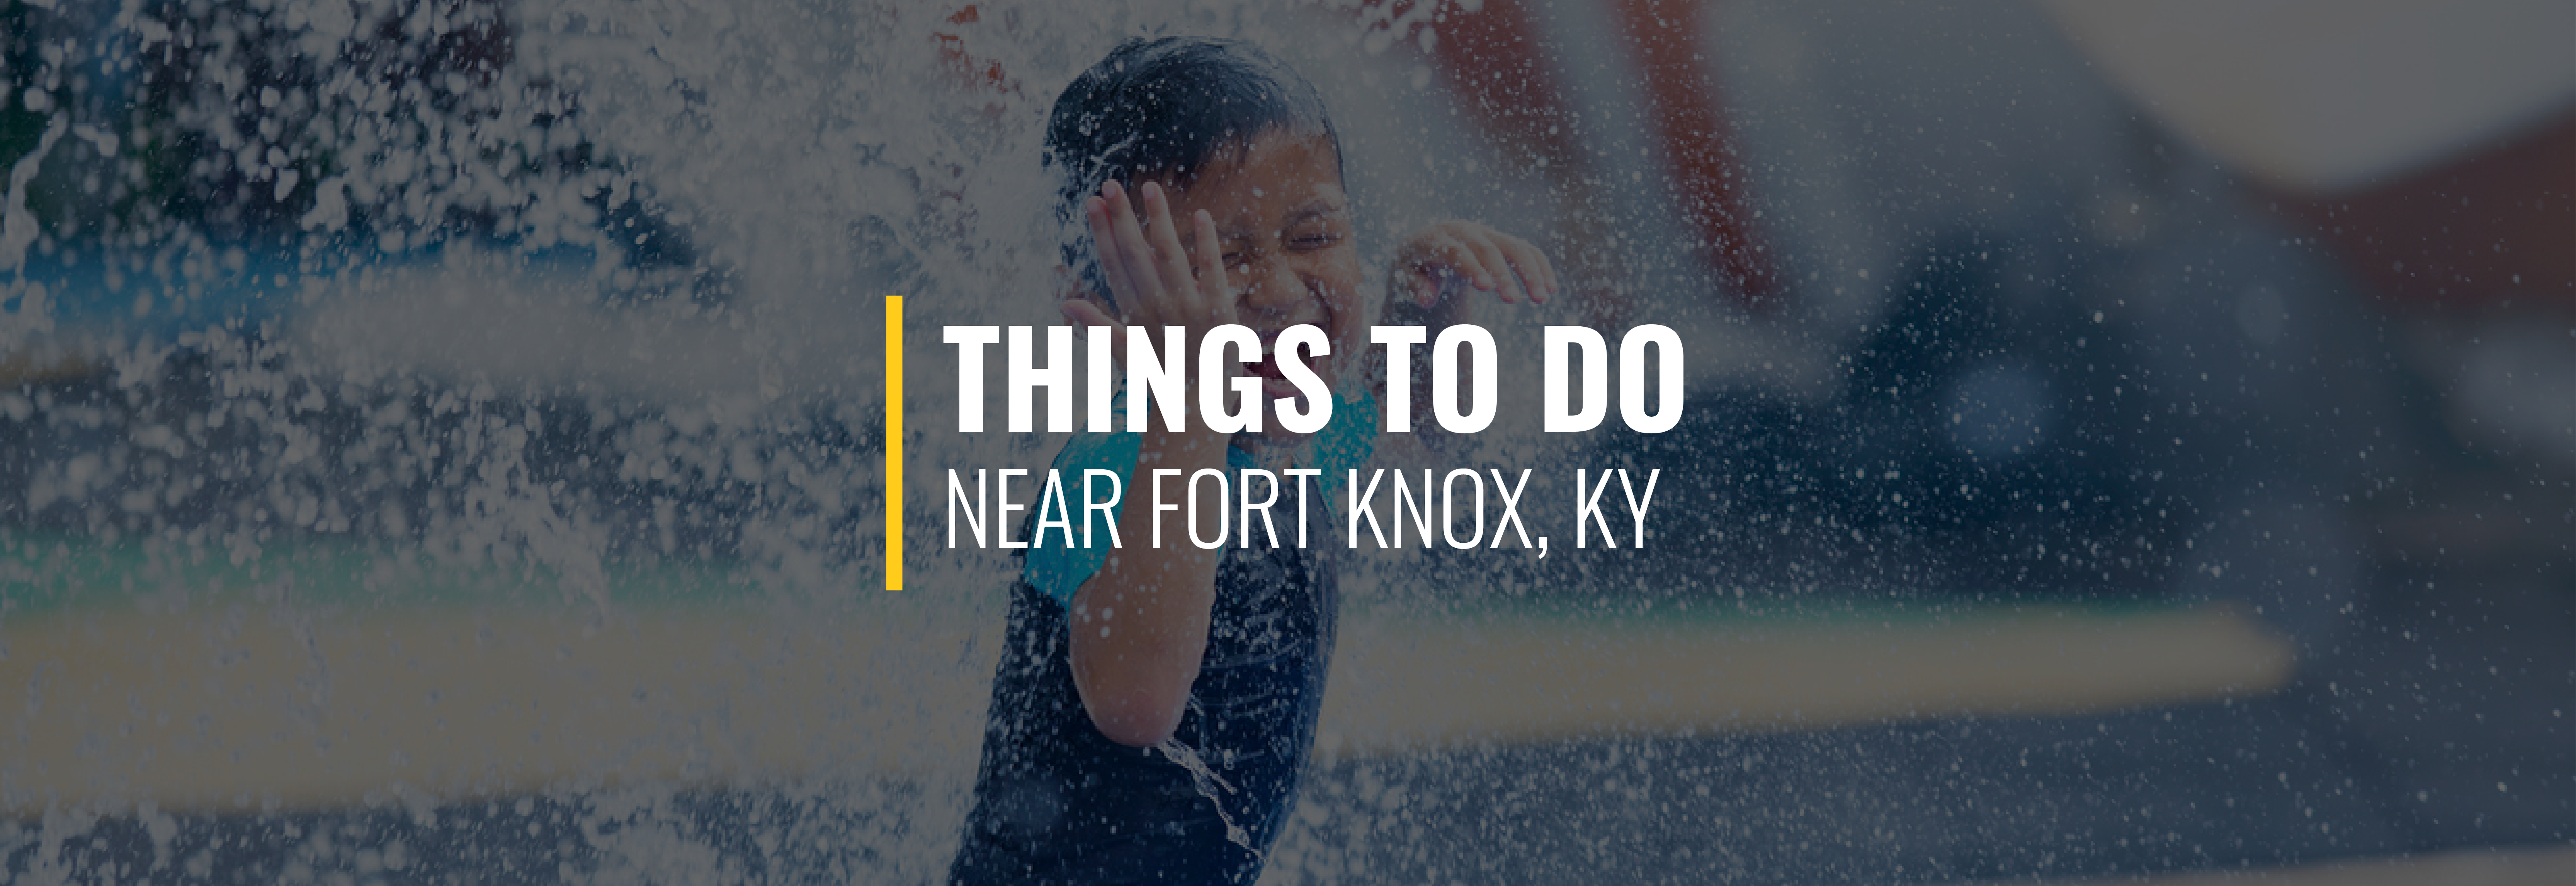 Things to Do Near Fort Knox